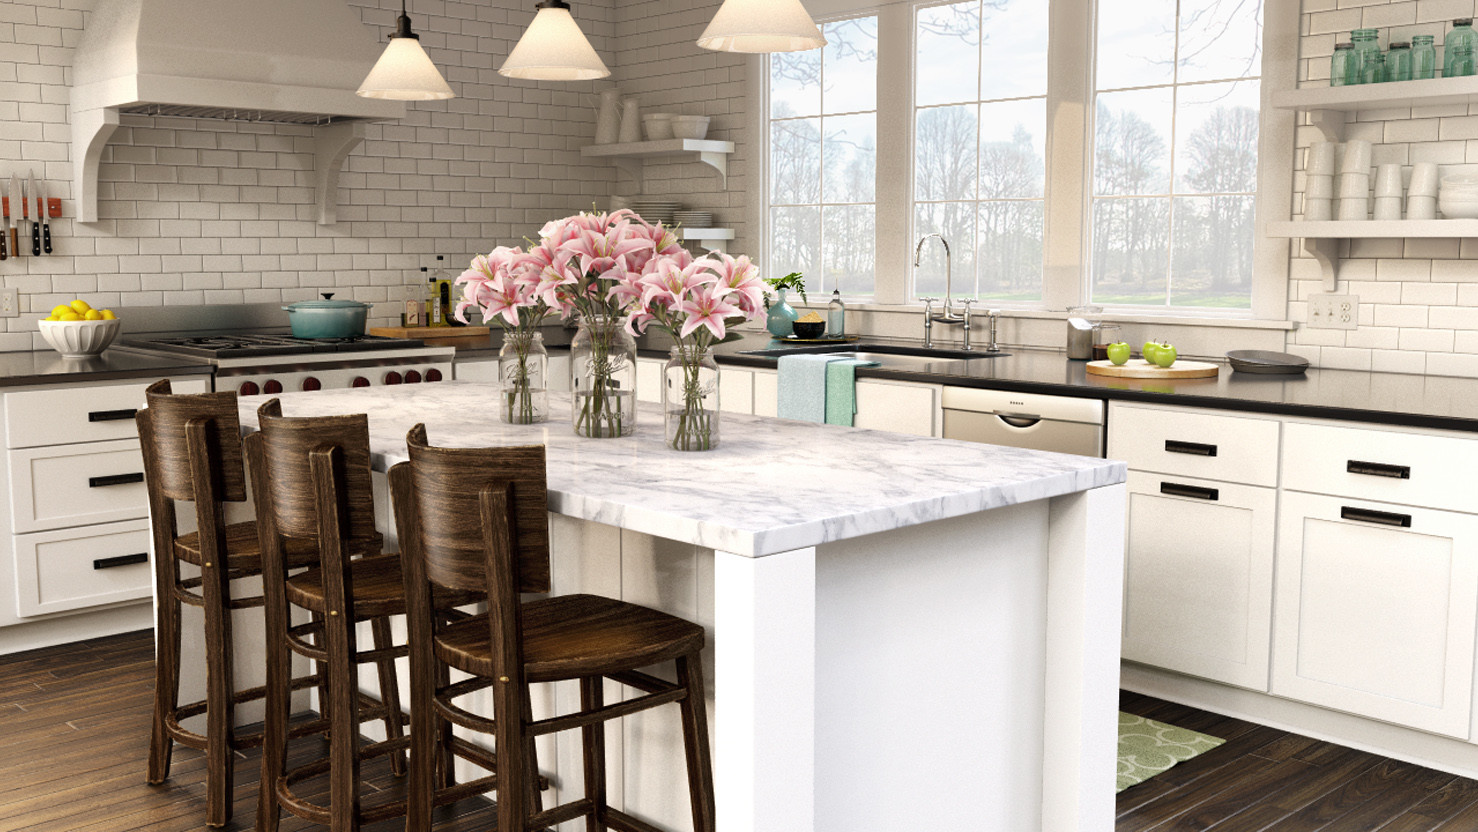 Architectural Rendering - Country Kitchen